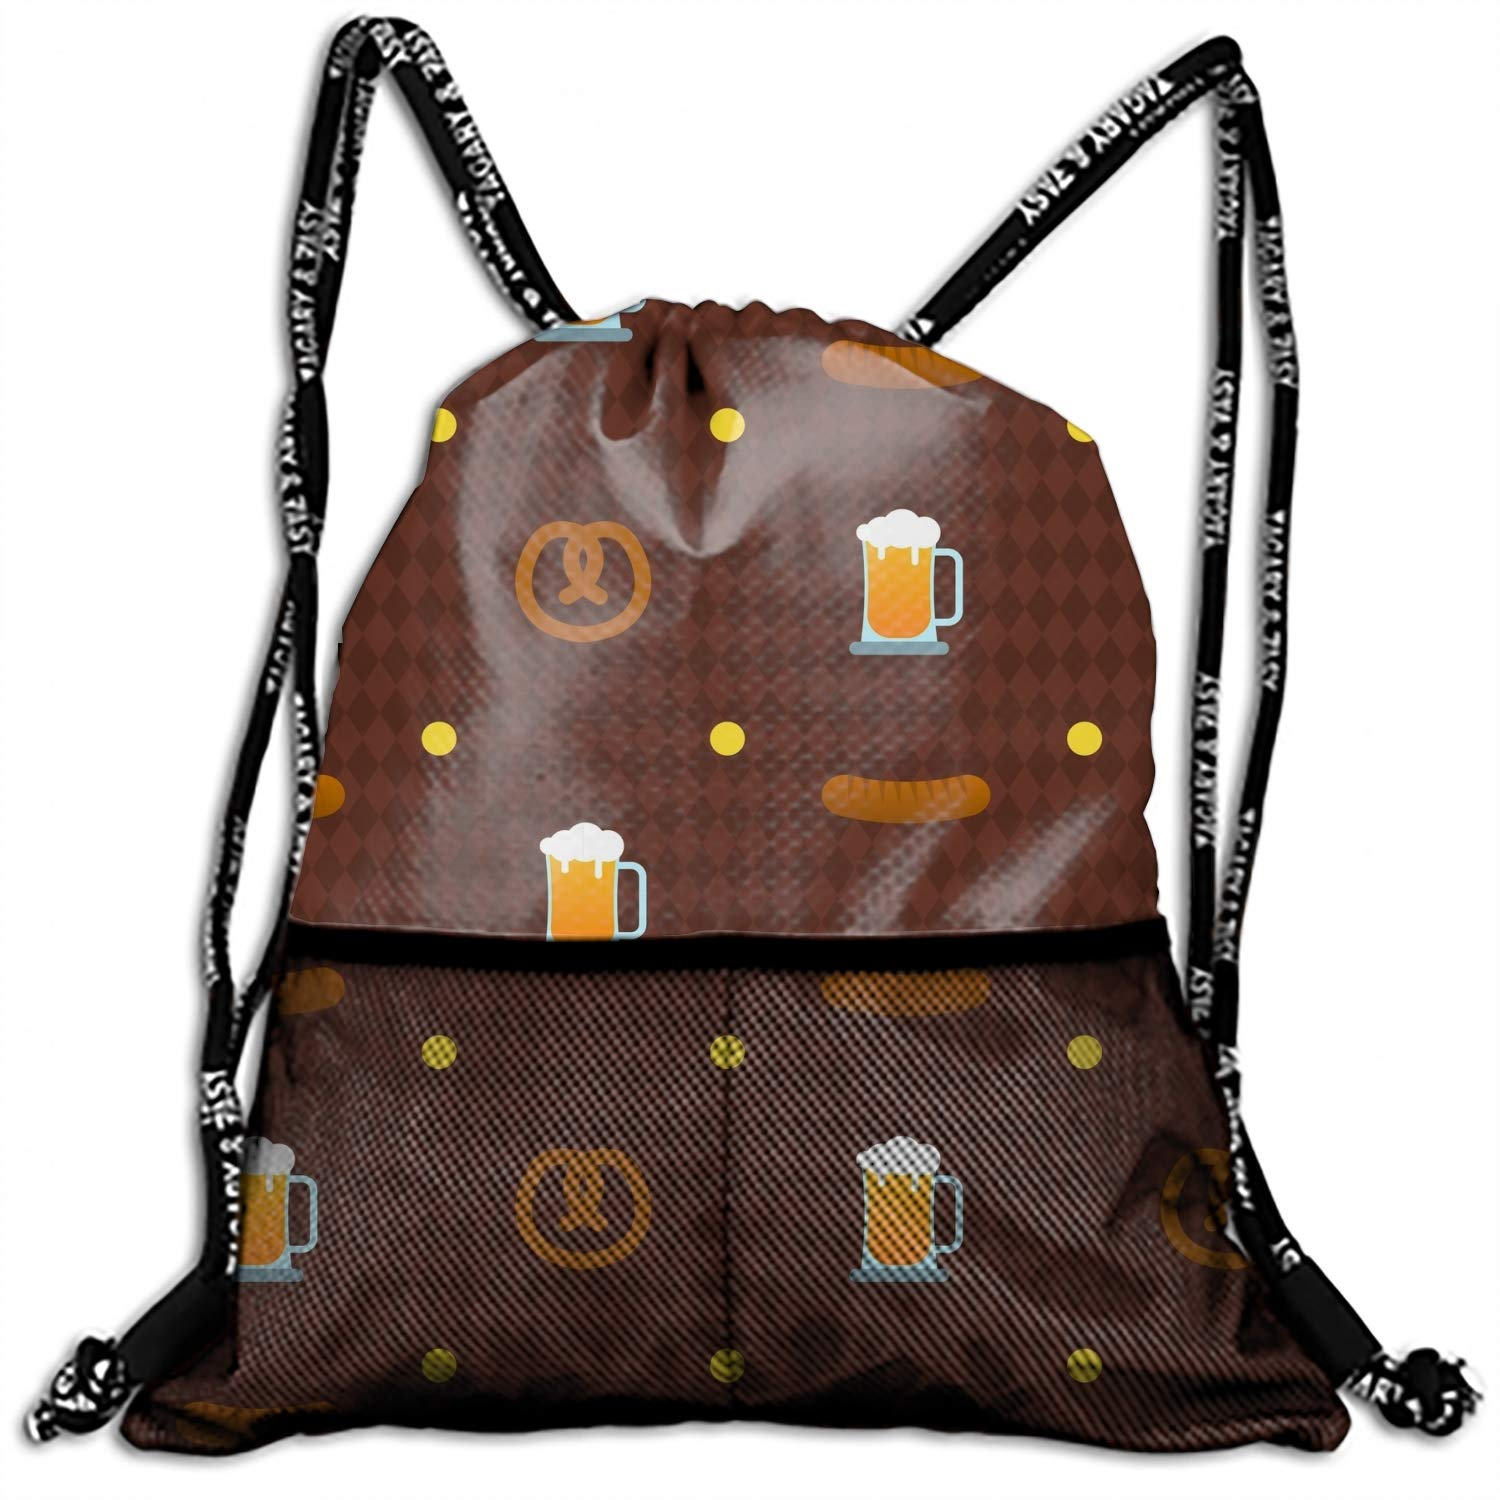 1 Pieces Drawstring Backpack Sport Bag Beer Pattern Cinch Tote Travel Rucksack for Traveling and Storage 10 Patterns